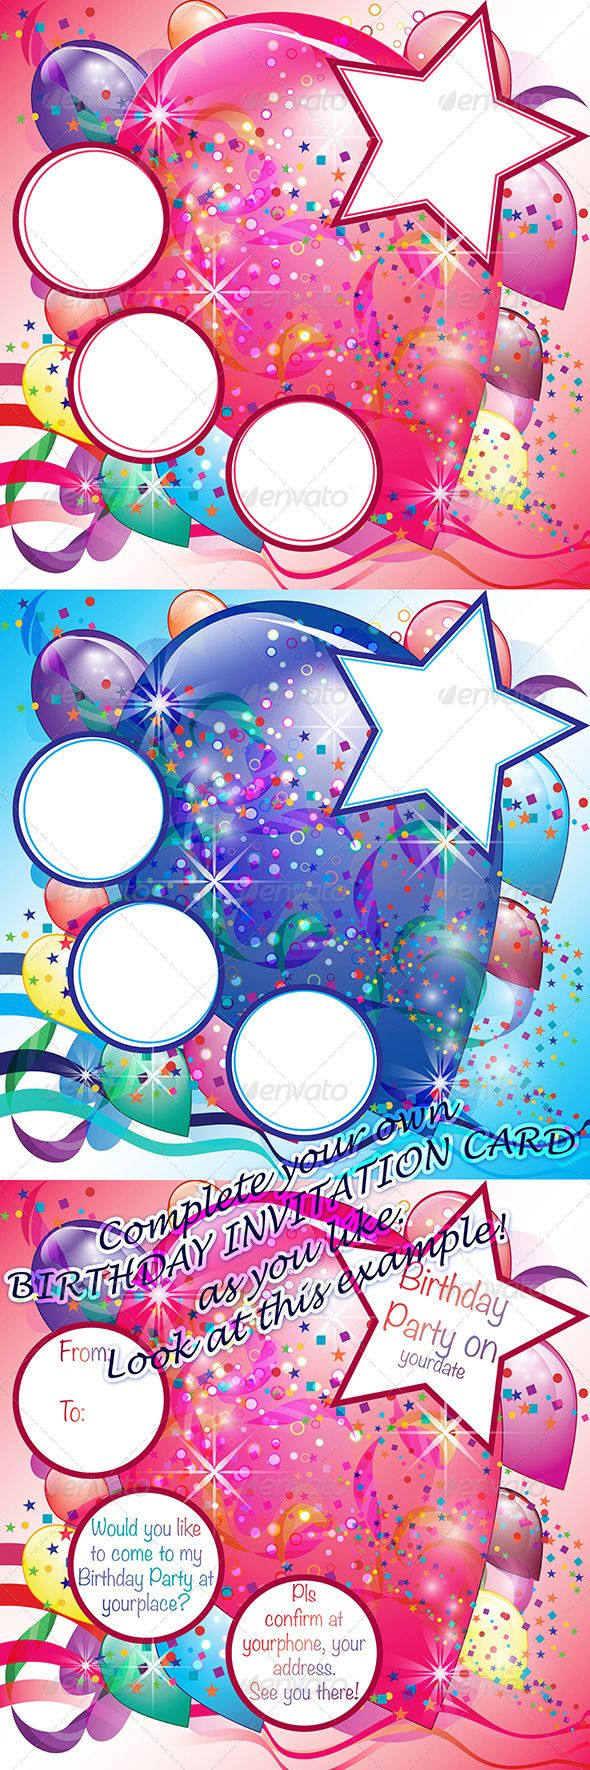 Set of Birthday Party Cards with Balloons/